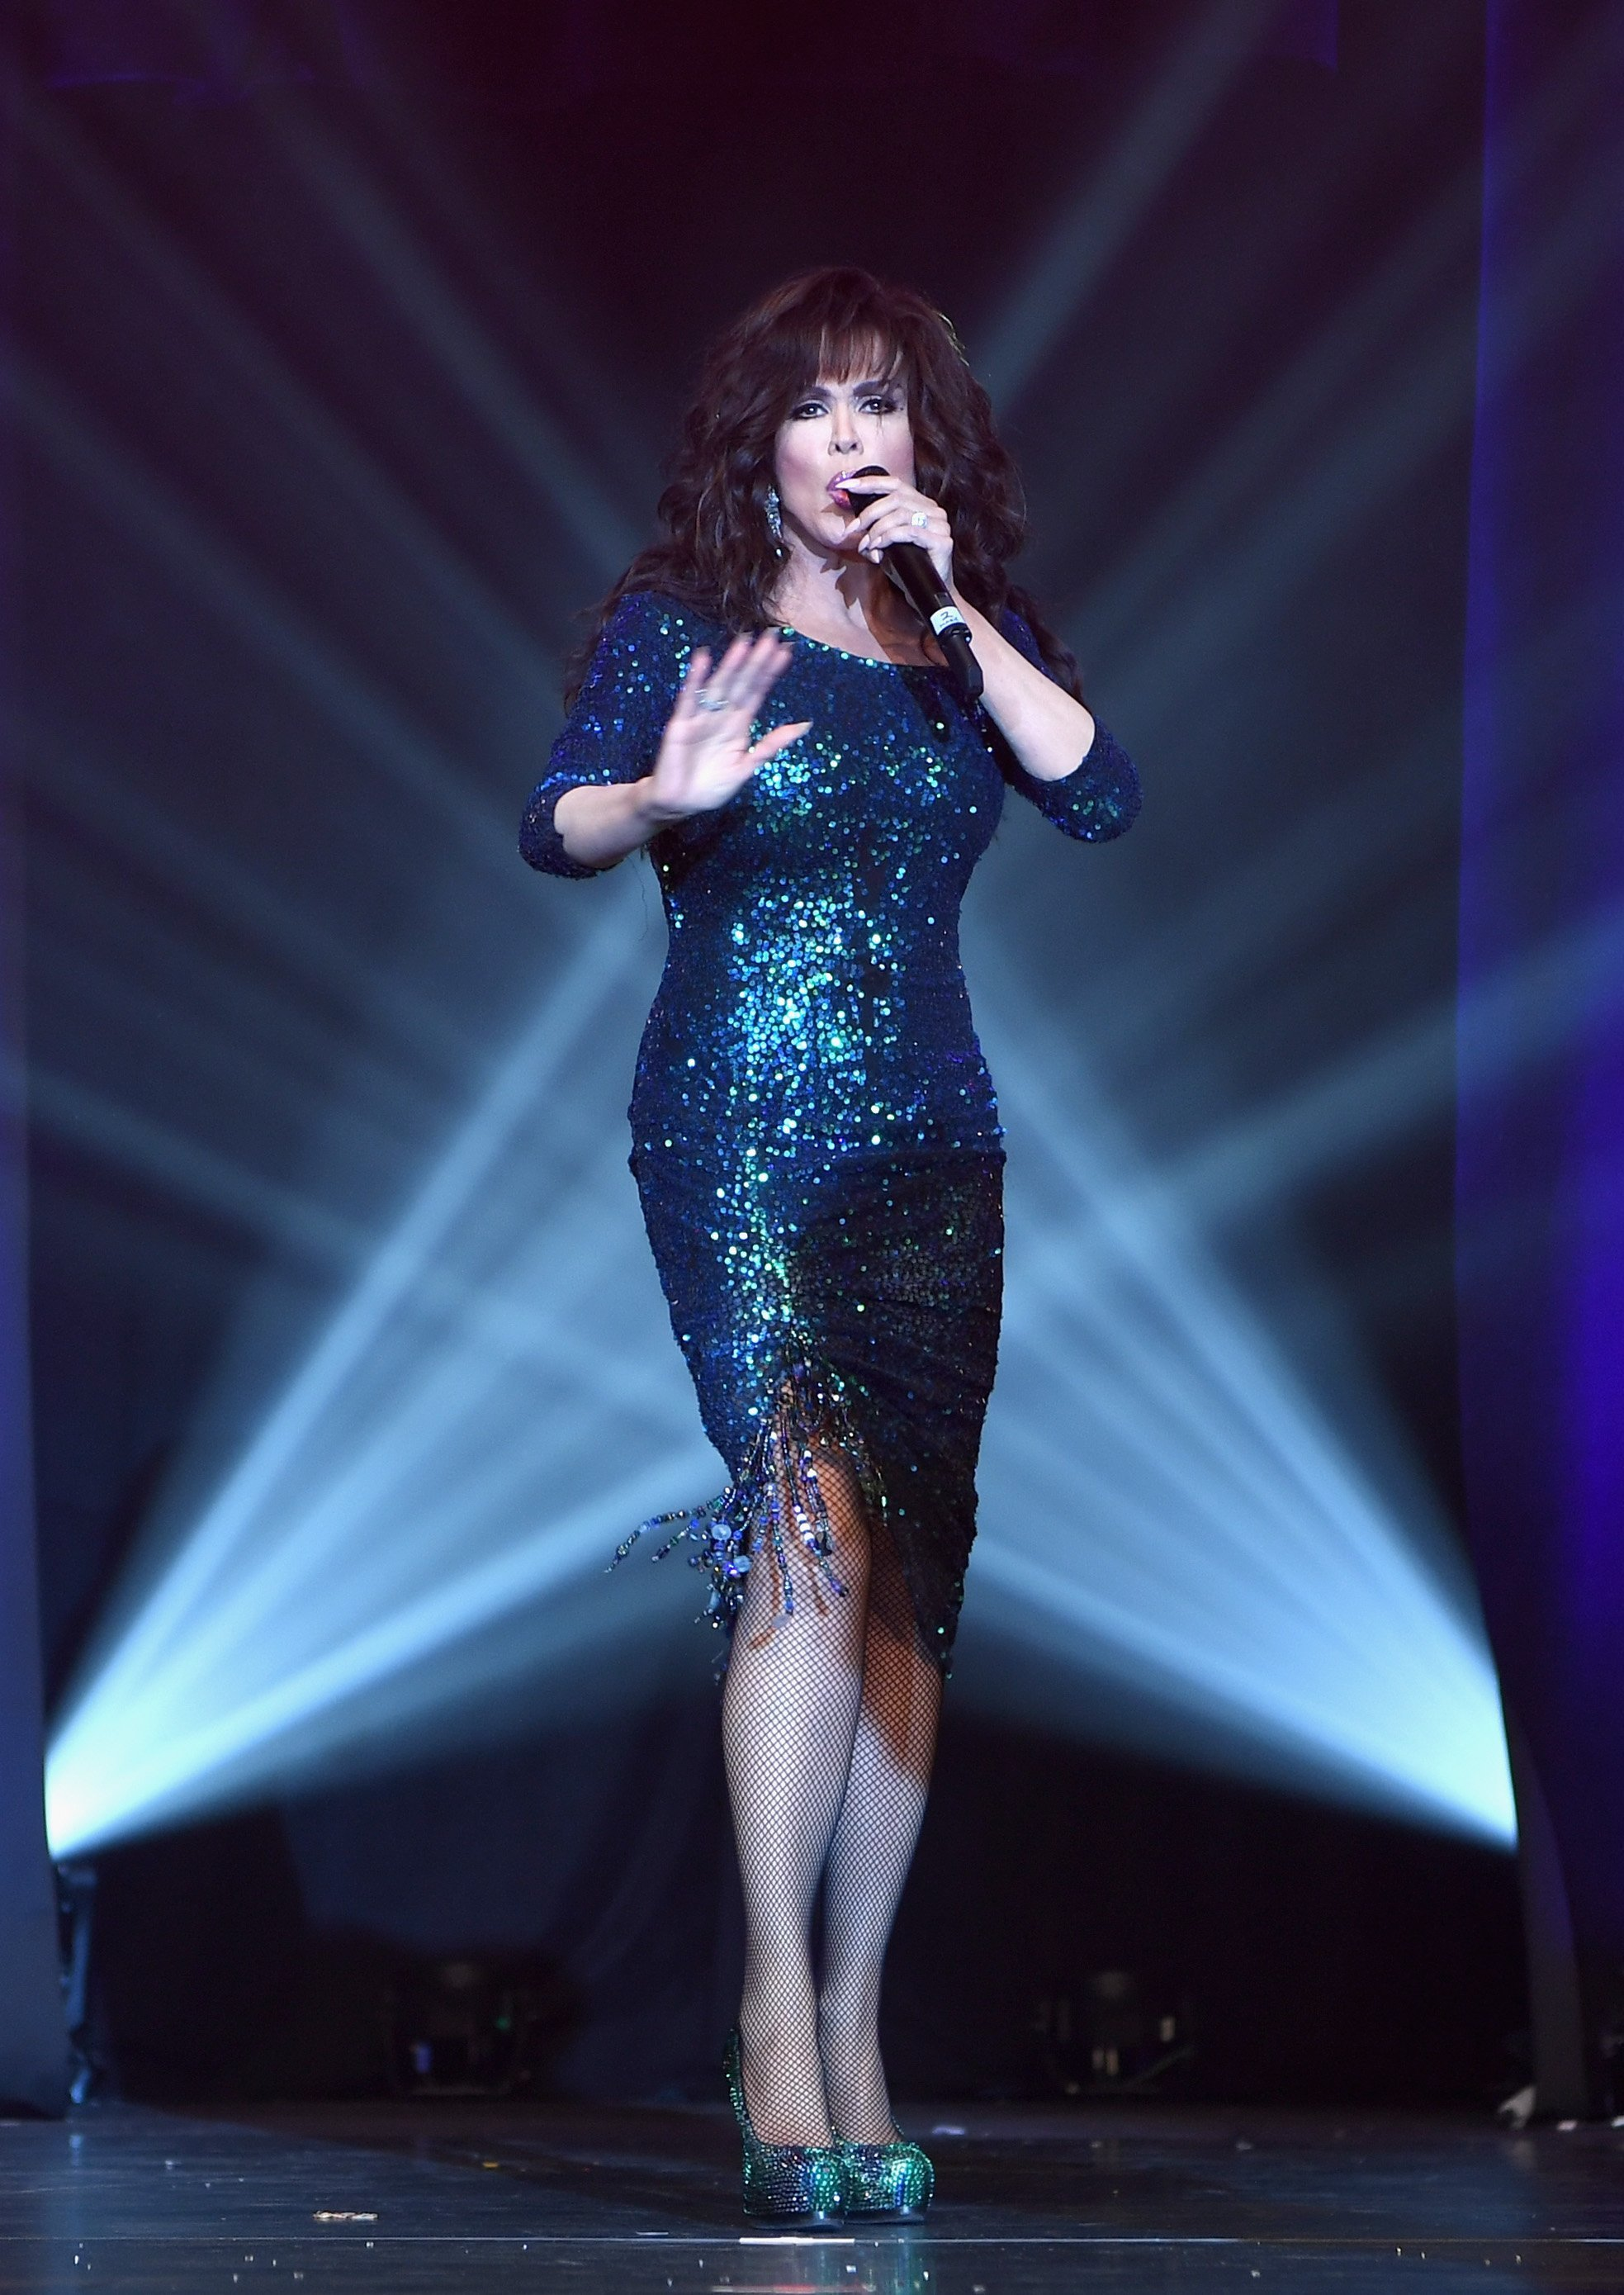 Marie Osmond performs at Caesars Palace 50th anniversary gala in Las Vegas, Nevada on August 6, 2016 | Photo: Getty Images